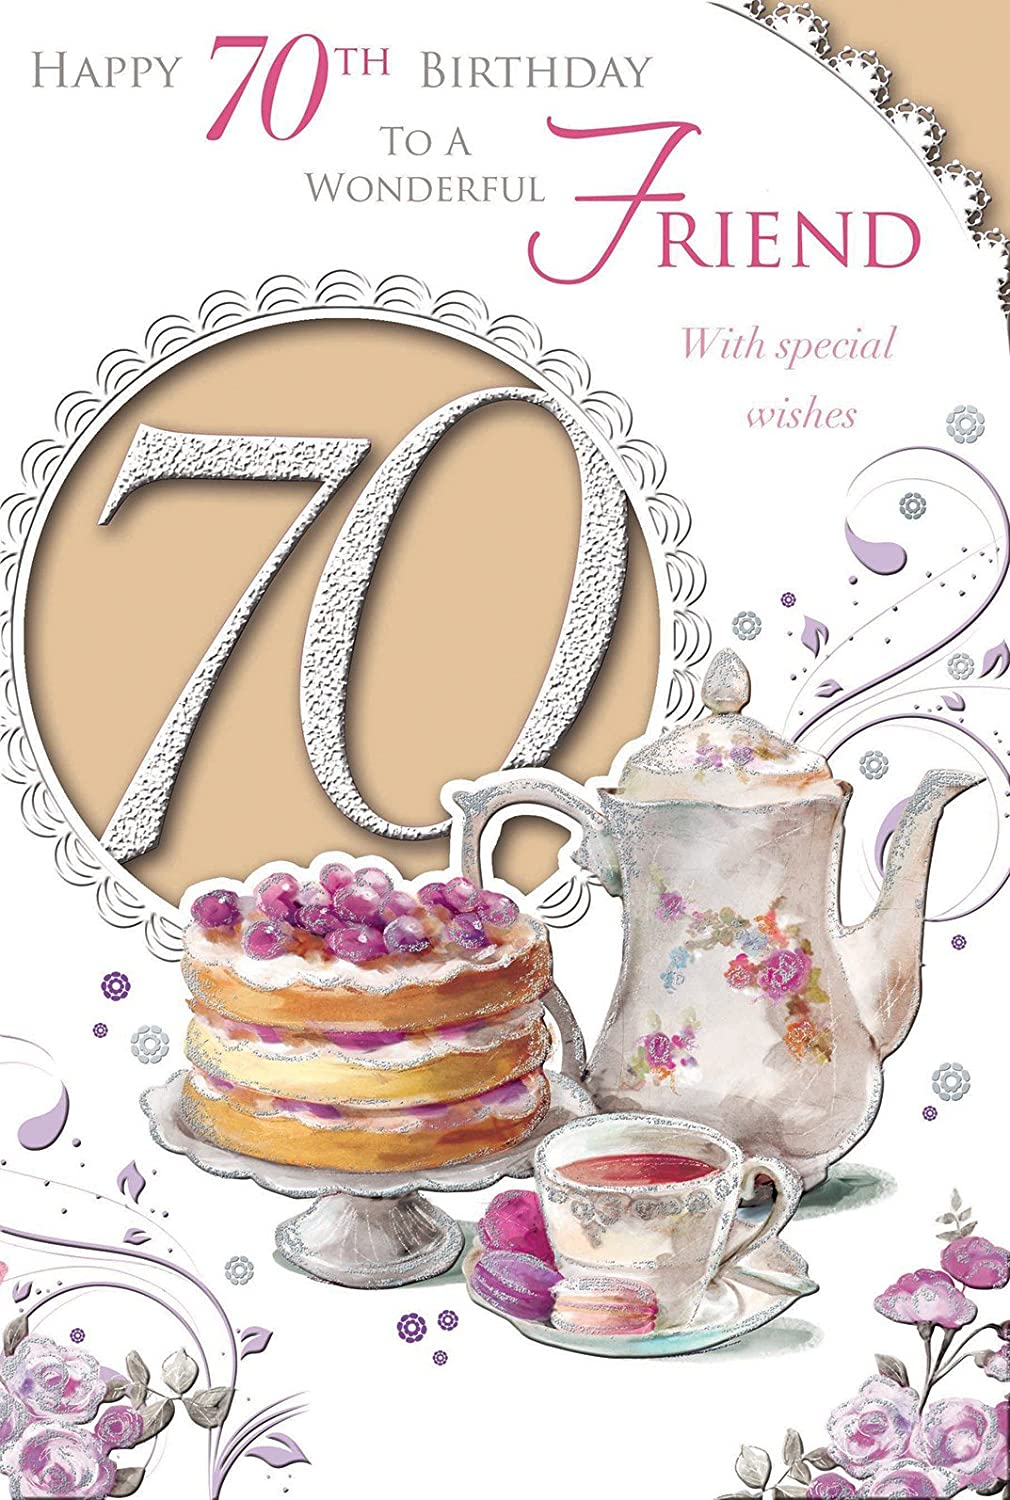 For A Dear Friend On Your 70th Birthday card Amazoncouk Office – 70th Birthday Verses for Cards